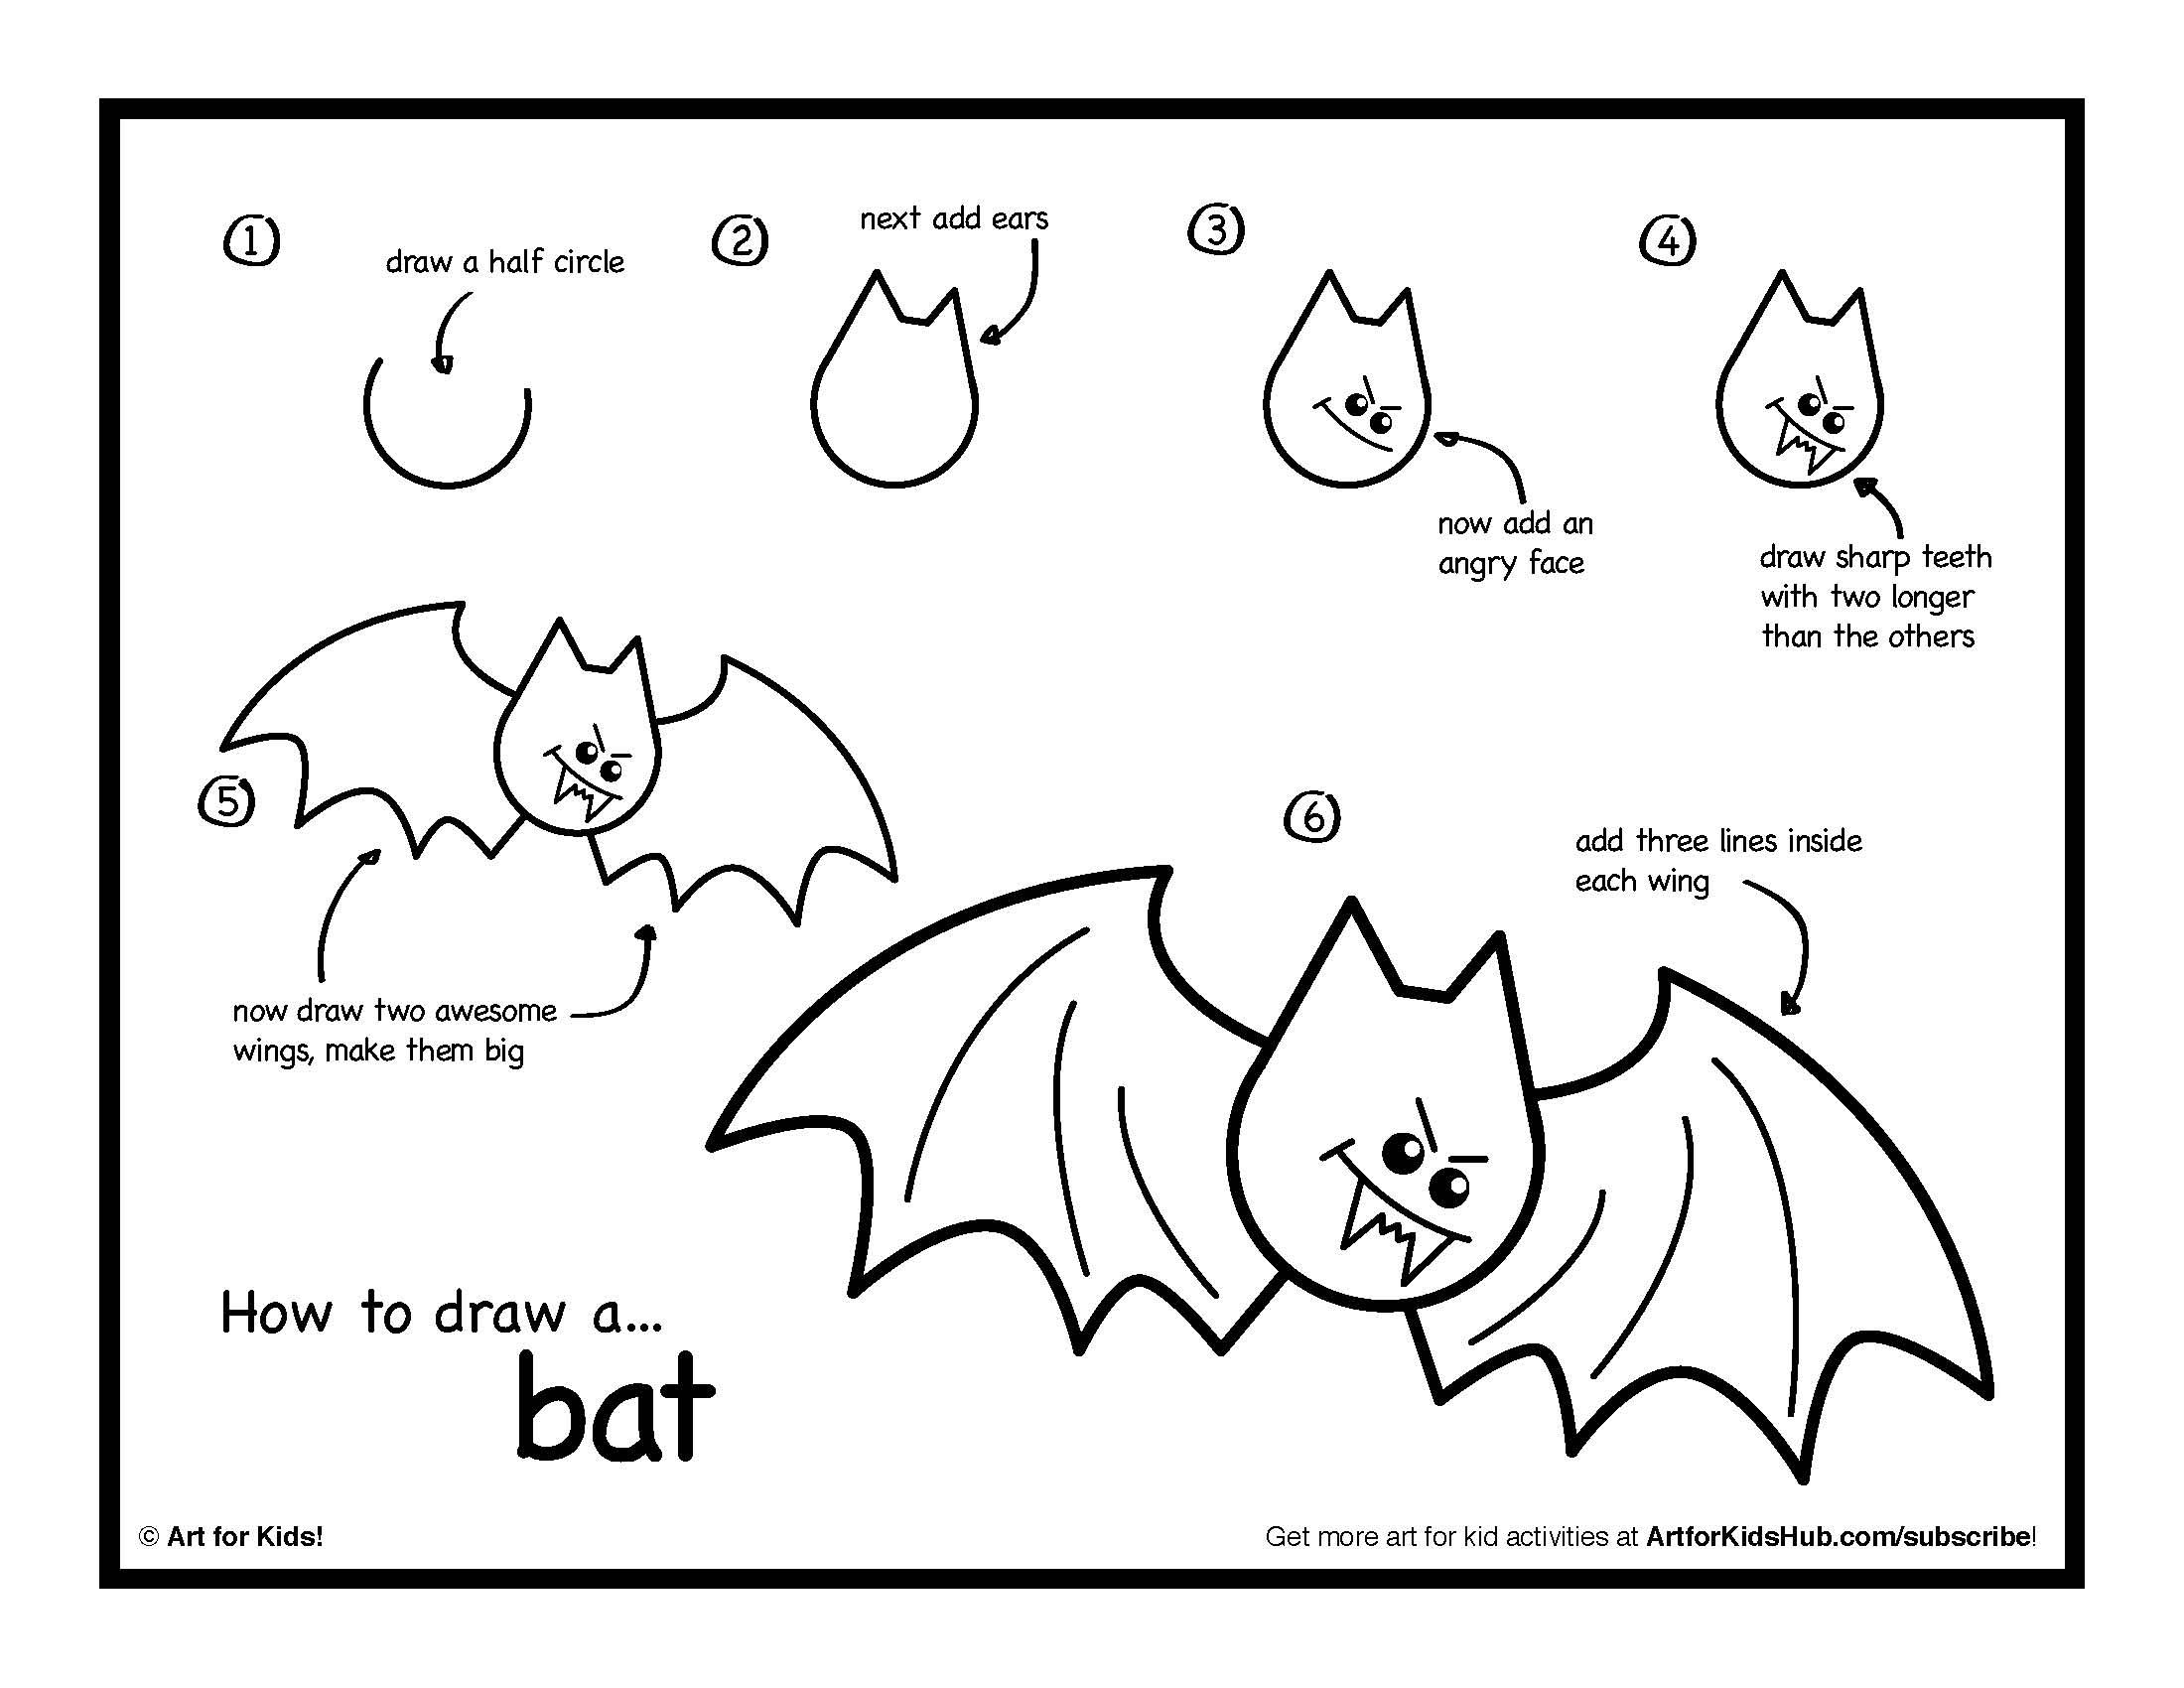 How To Draw A Bat Done